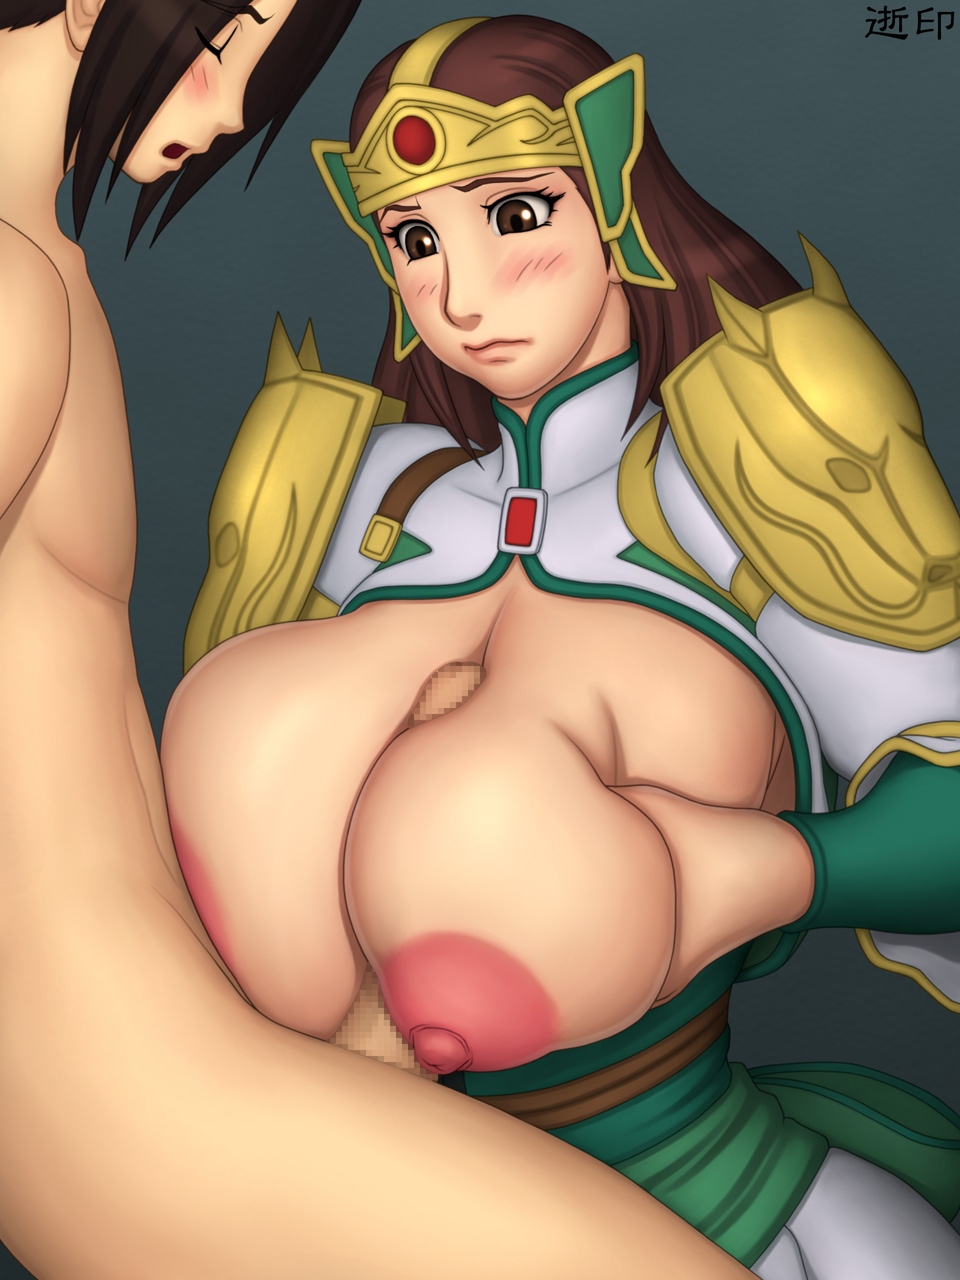 Warriors orochi sexiest female pornos comics